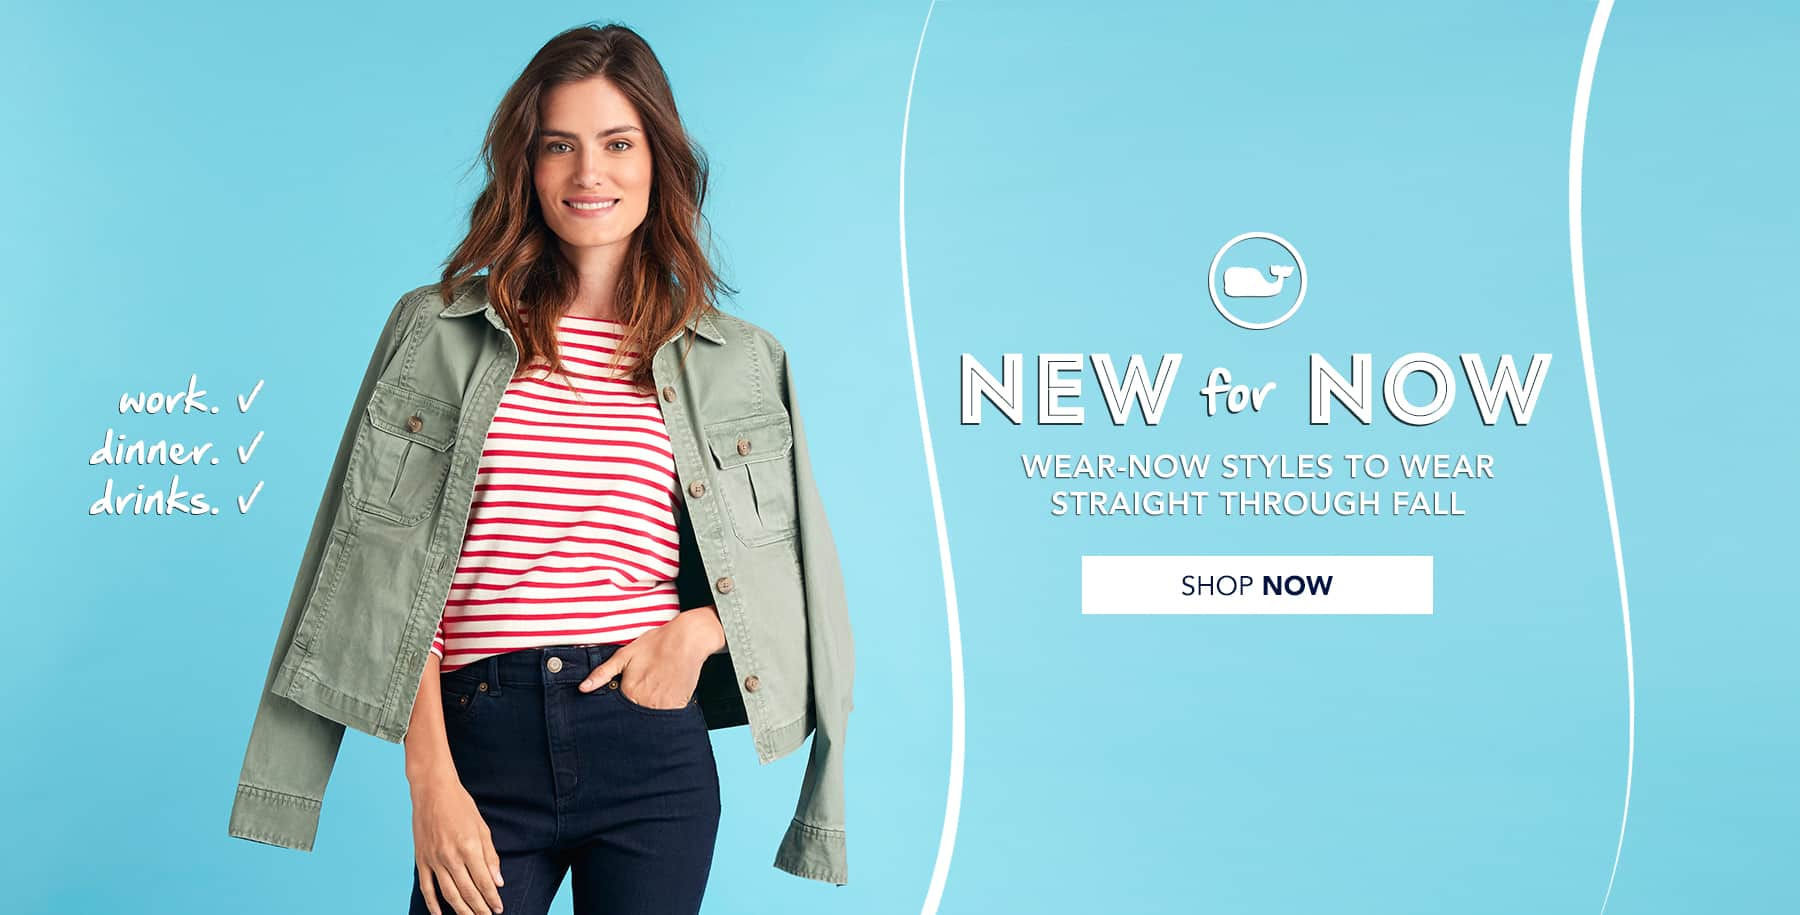 New for now. Women's wear-now styles to wear straight through Fall. Shop now.